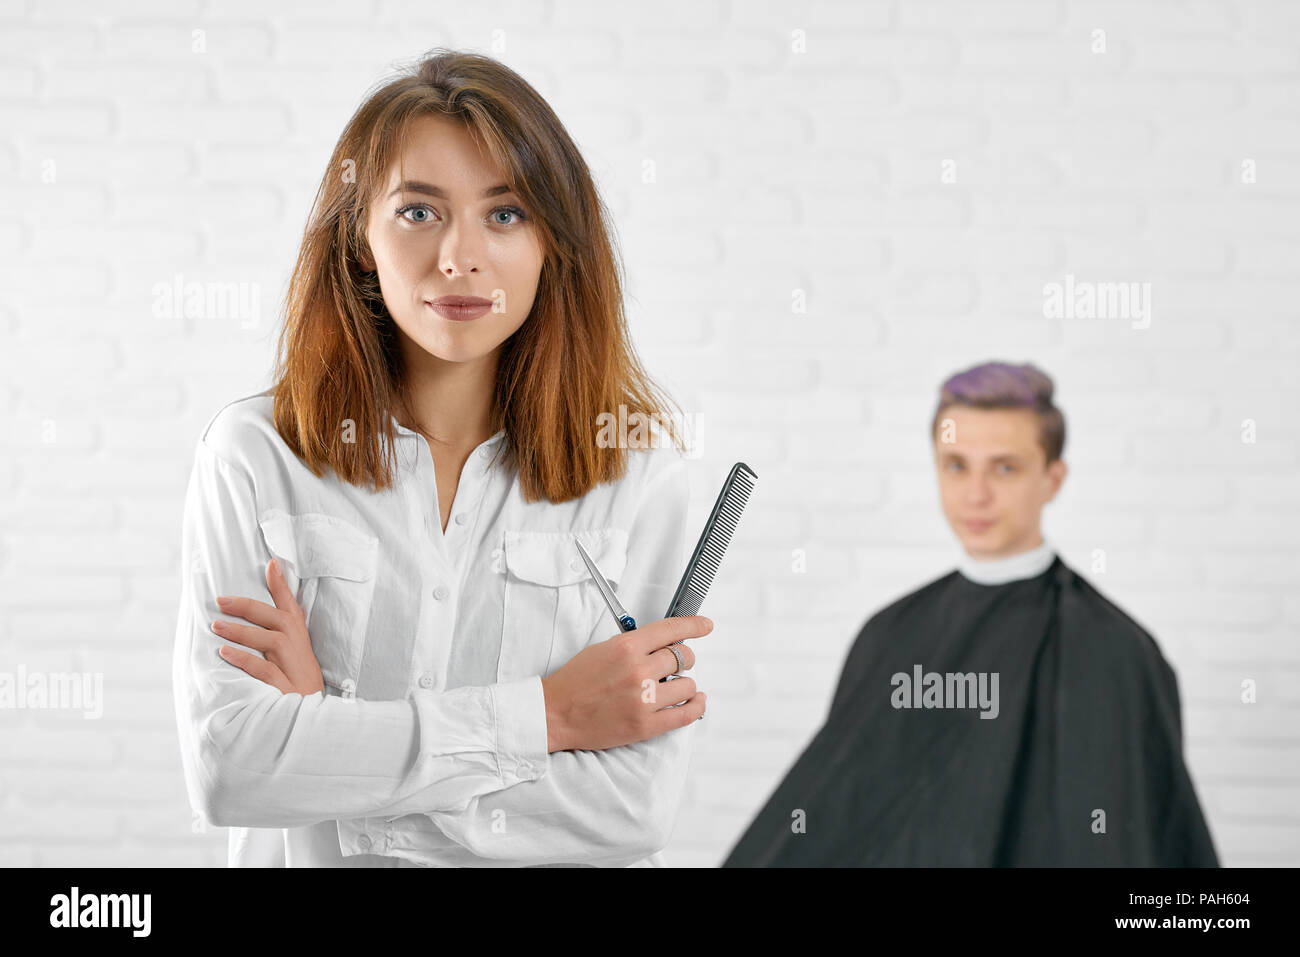 Female hairstylist standing in front of young client with toned lilac hair, covered with black cape. Woman wearing white classic casual shirt with pockets. Looking at camera, white background. - Stock Image